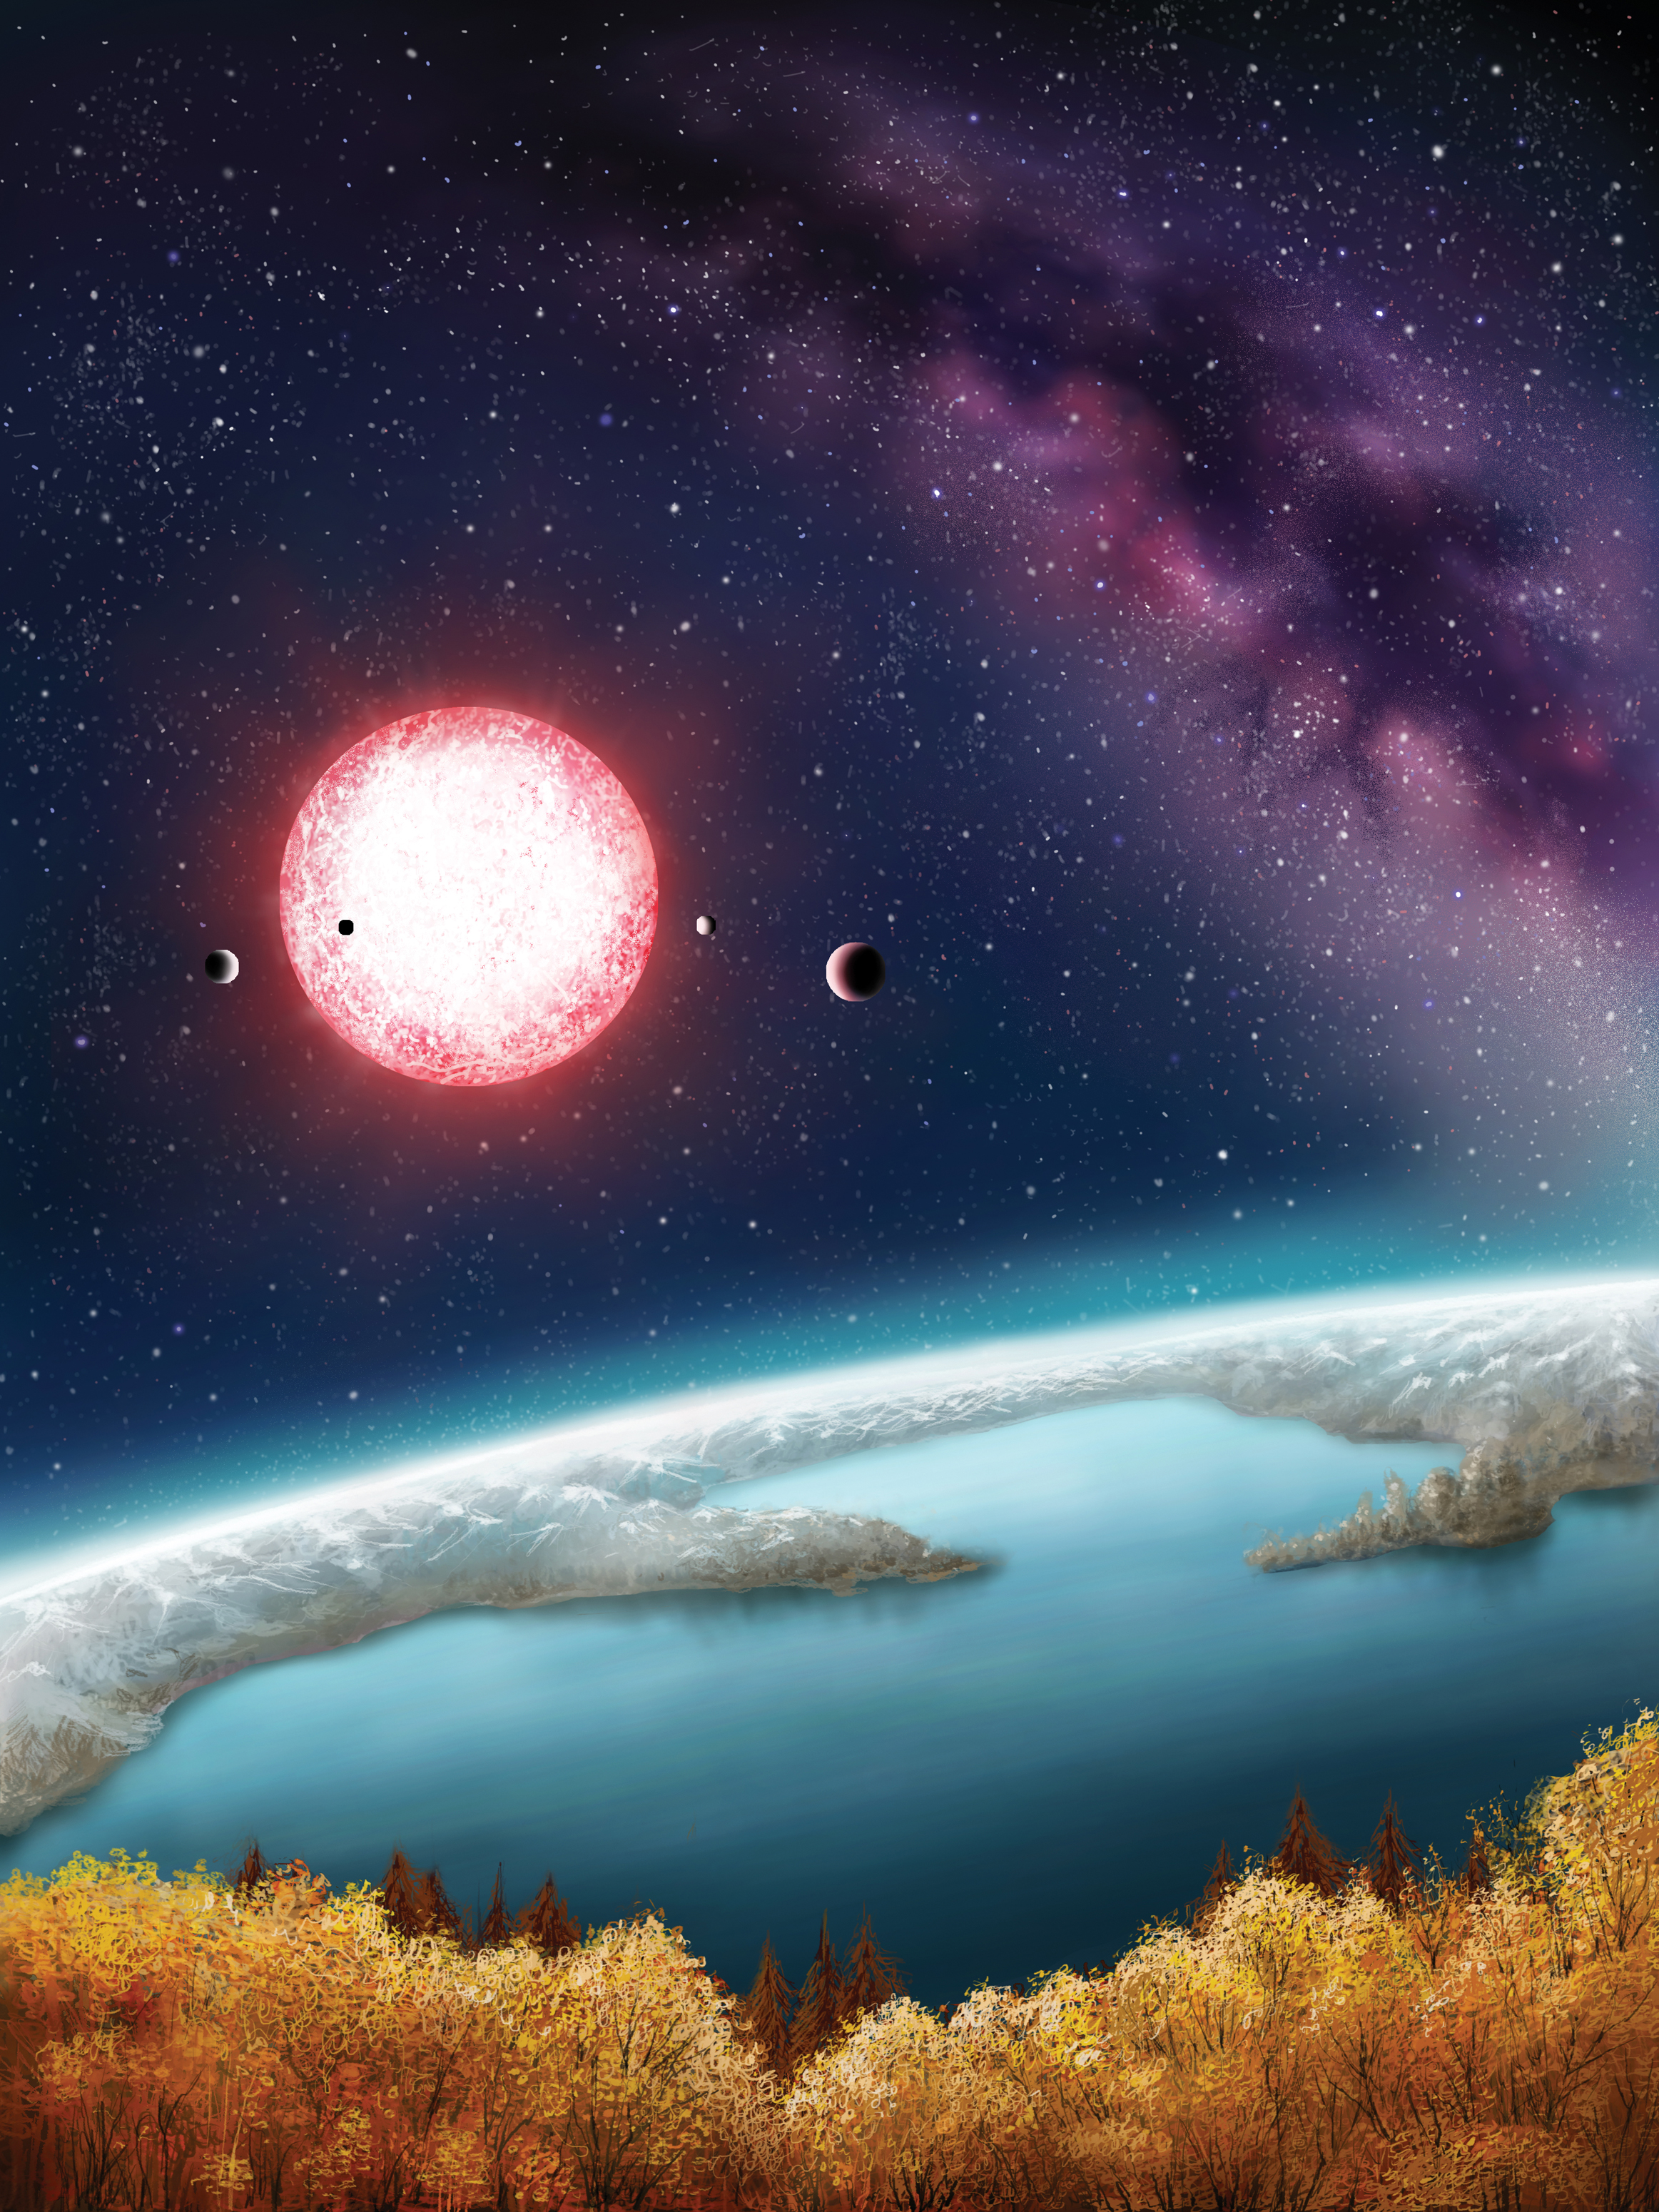 An artist's conception of Kepler 186f, with its reddish sun setting over its maybe-ocean.